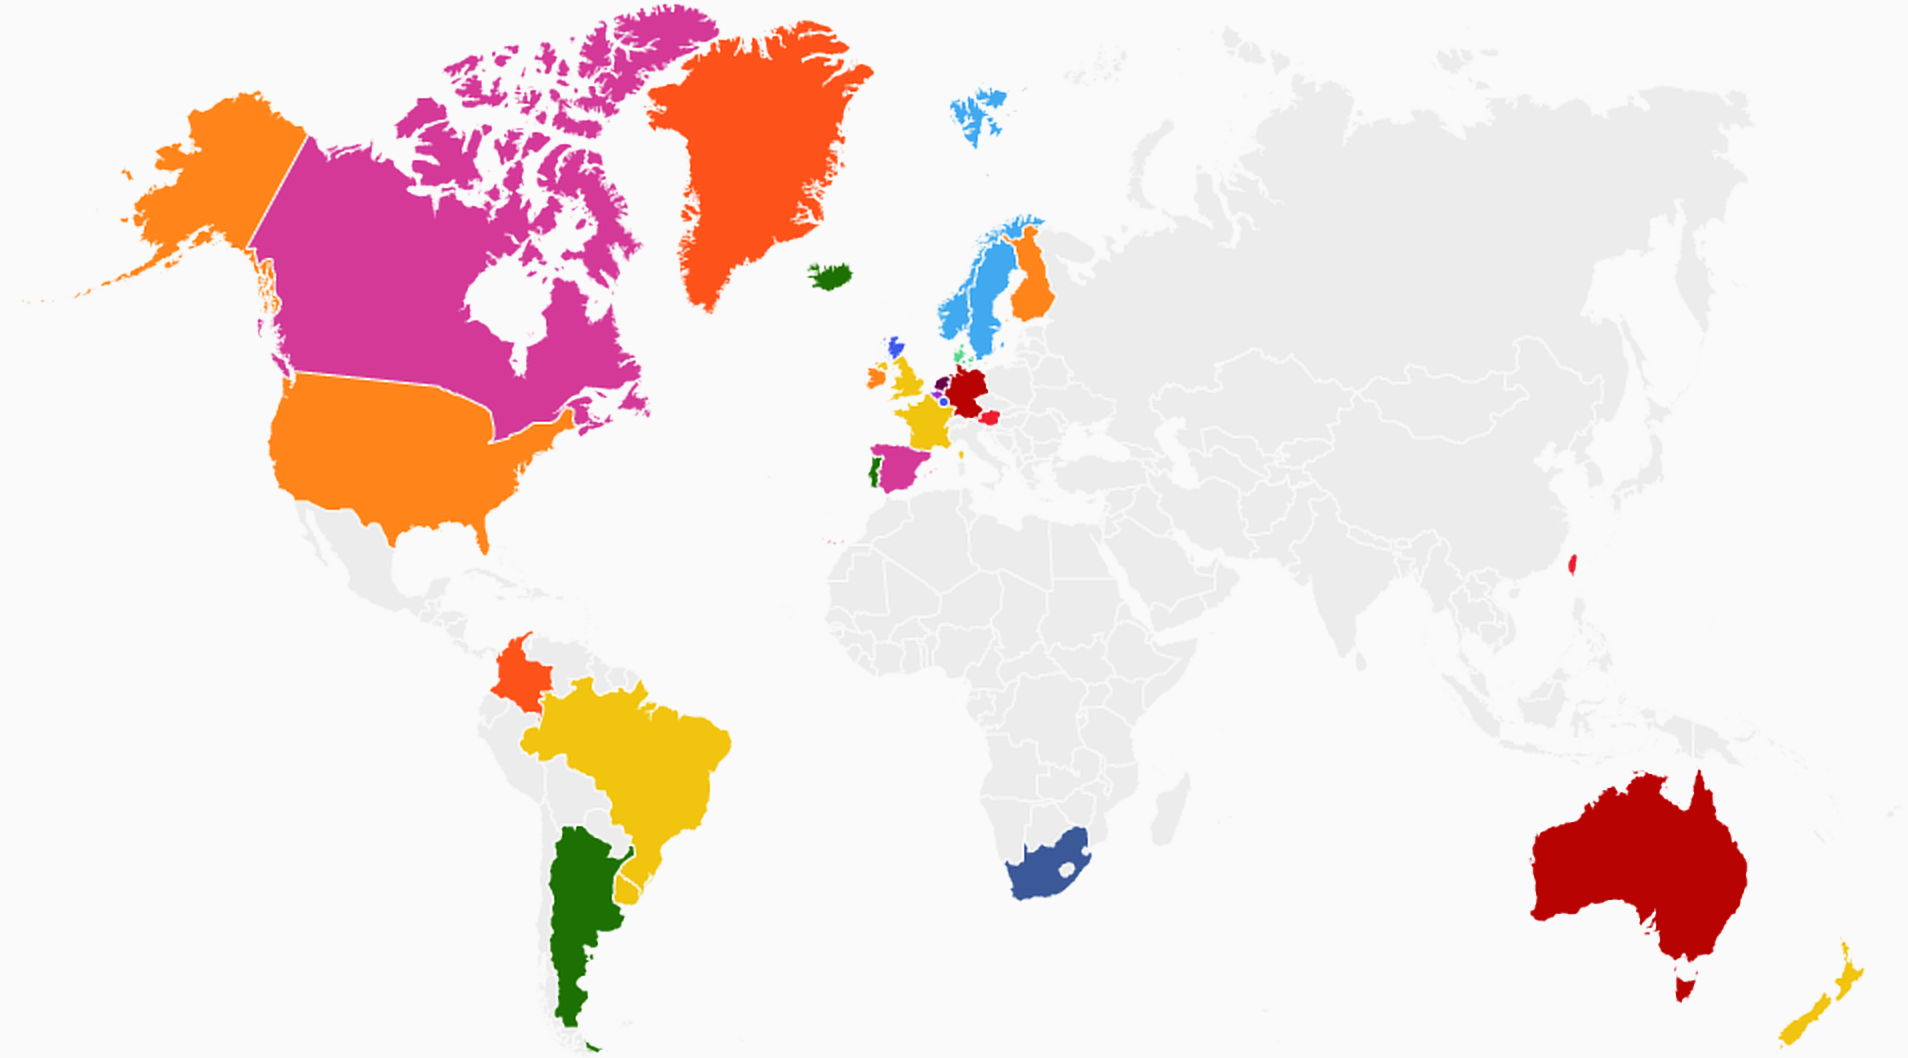 LGBT+ rights: Th countries where same- marriage is legal ... on map of europe, map of oceans, map of canada, map of united kingdom, map of hemispheres, map of world, map of africa, map of continents, map of germany, map of philippines, map of romania, map of states, map of greece, map of bangladesh, map of mexico, map of brazil, map of asia, map of country, map of italy,